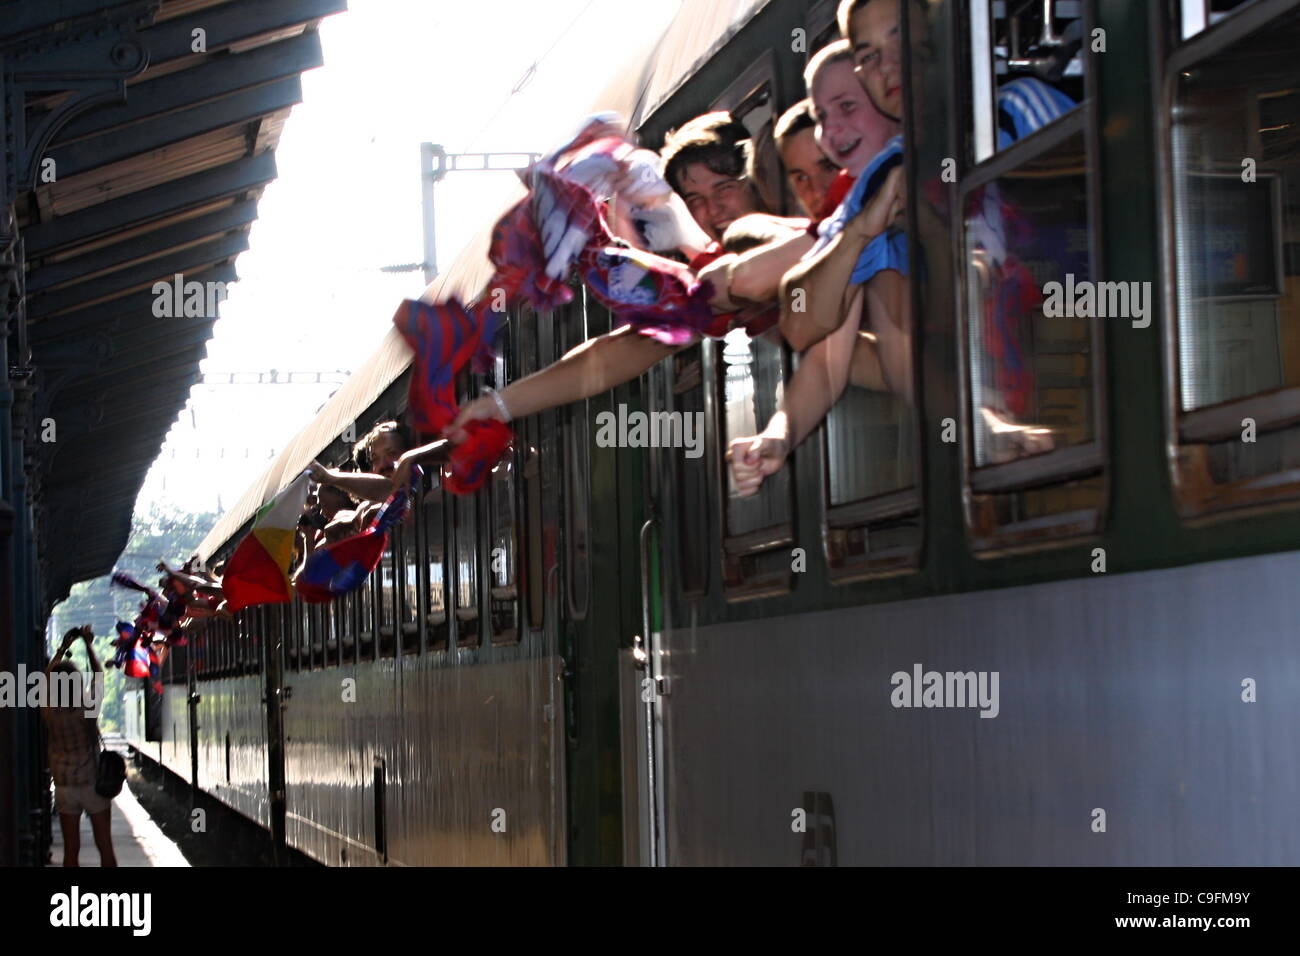 ***FILE PHOTO***Fans of FC Viktoria Plzen at the Main Station Pilsen ahead of departure for second leg play-off - Stock Image